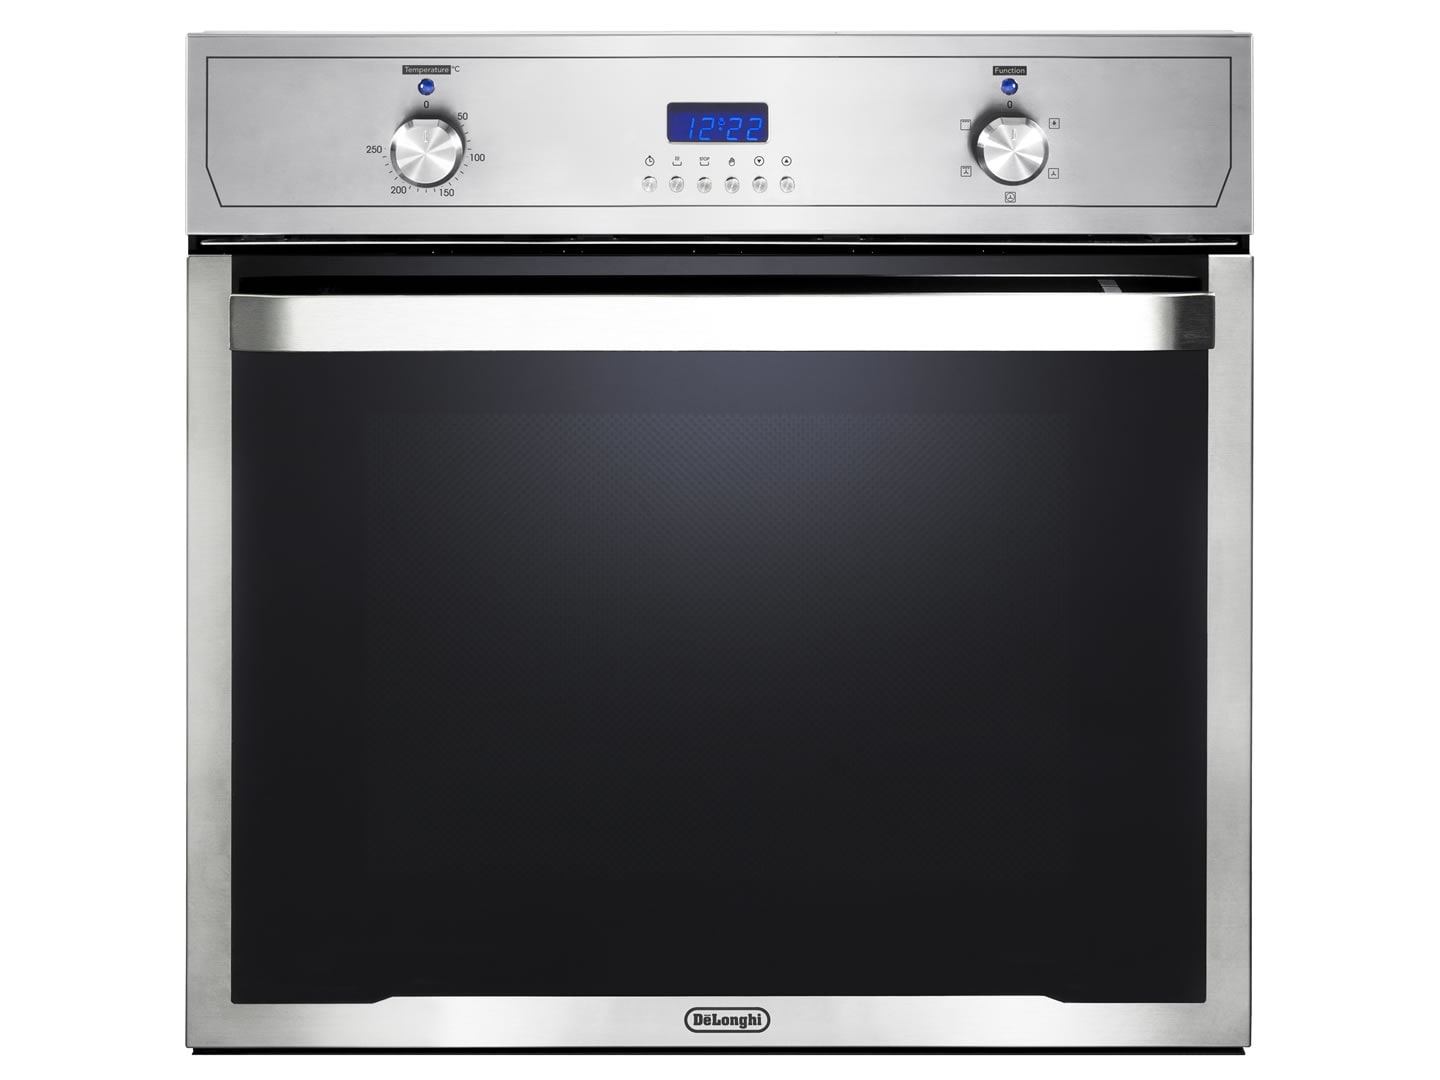 60cm 4 Function Built In Lifestyle Oven DEL604M